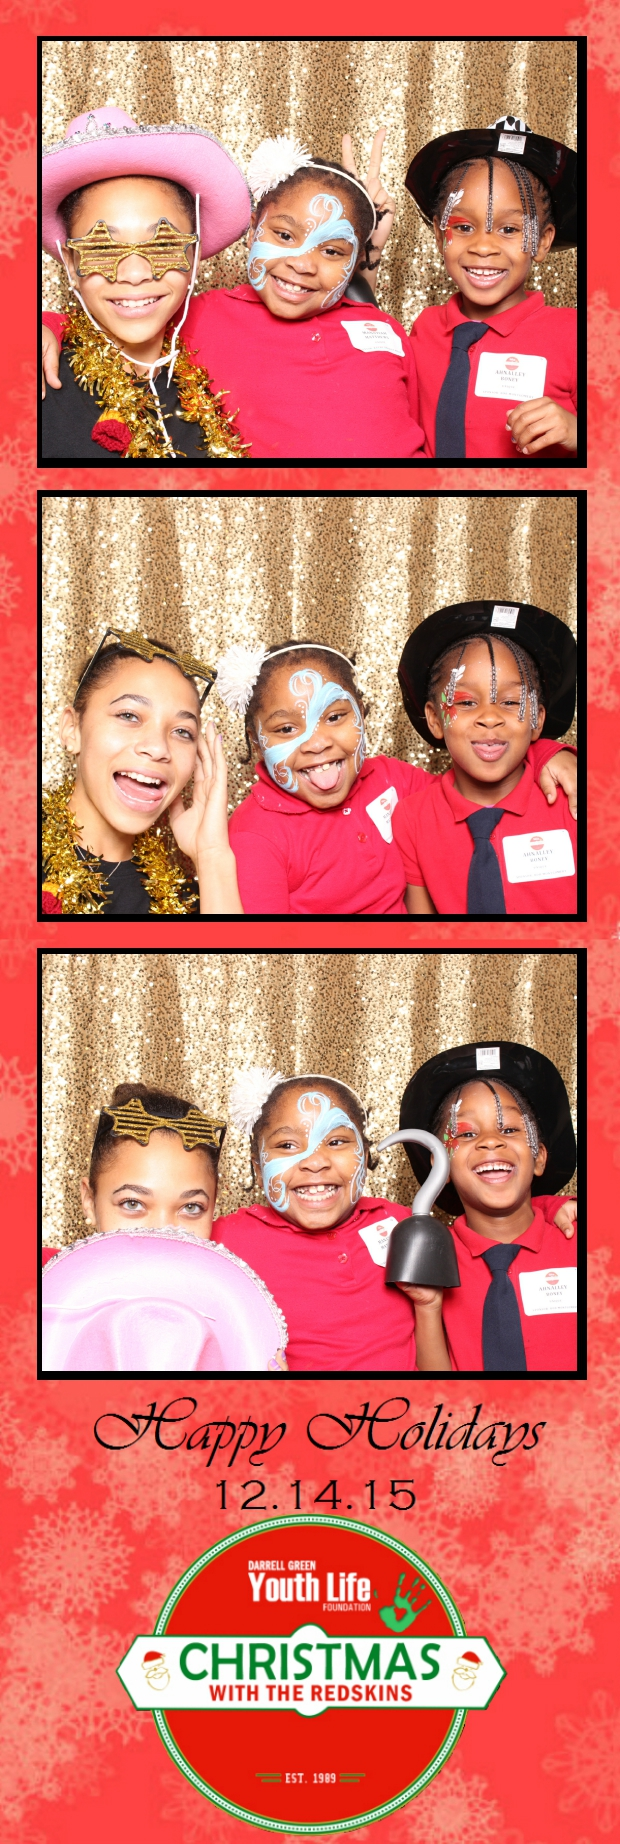 Guest House Events Photo Booth DGYLF Strips (55).jpg